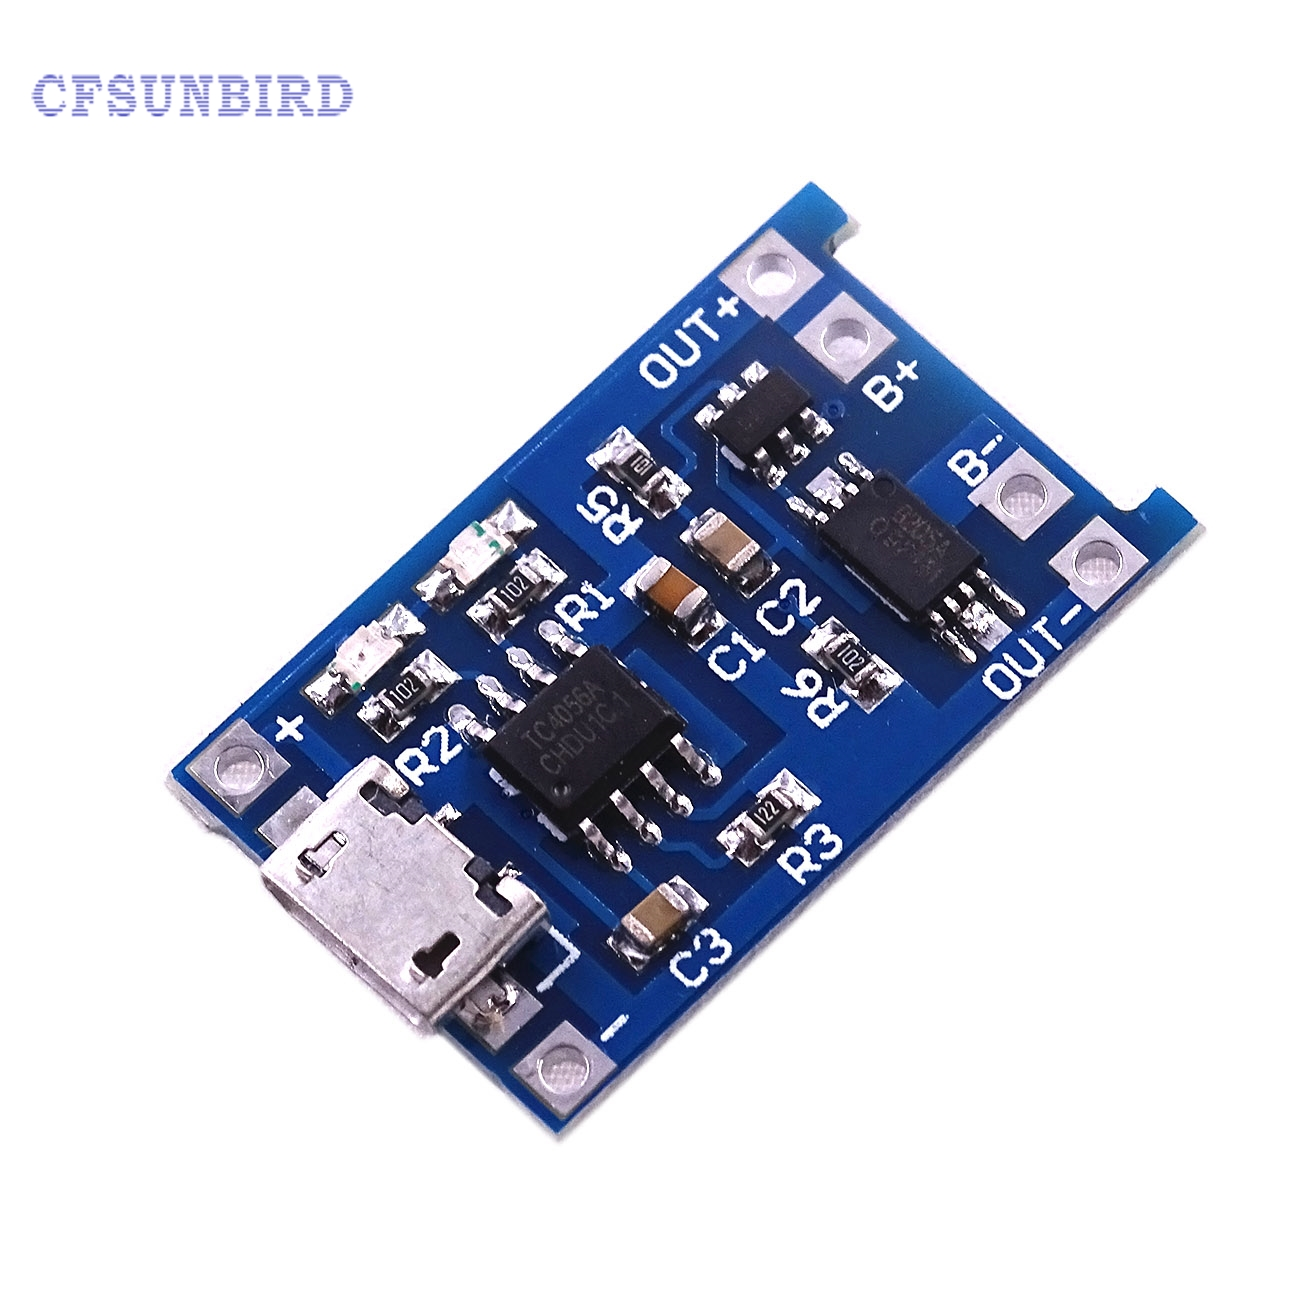 10pcs  Micro USB 5V 1A 18650 TP4056 Lithium Battery Charger Module Charging Board With Protection Dual Functions 12a 3s 18650 li ion lithium battery cell charger protection board pcb lithium polymer battery charging module